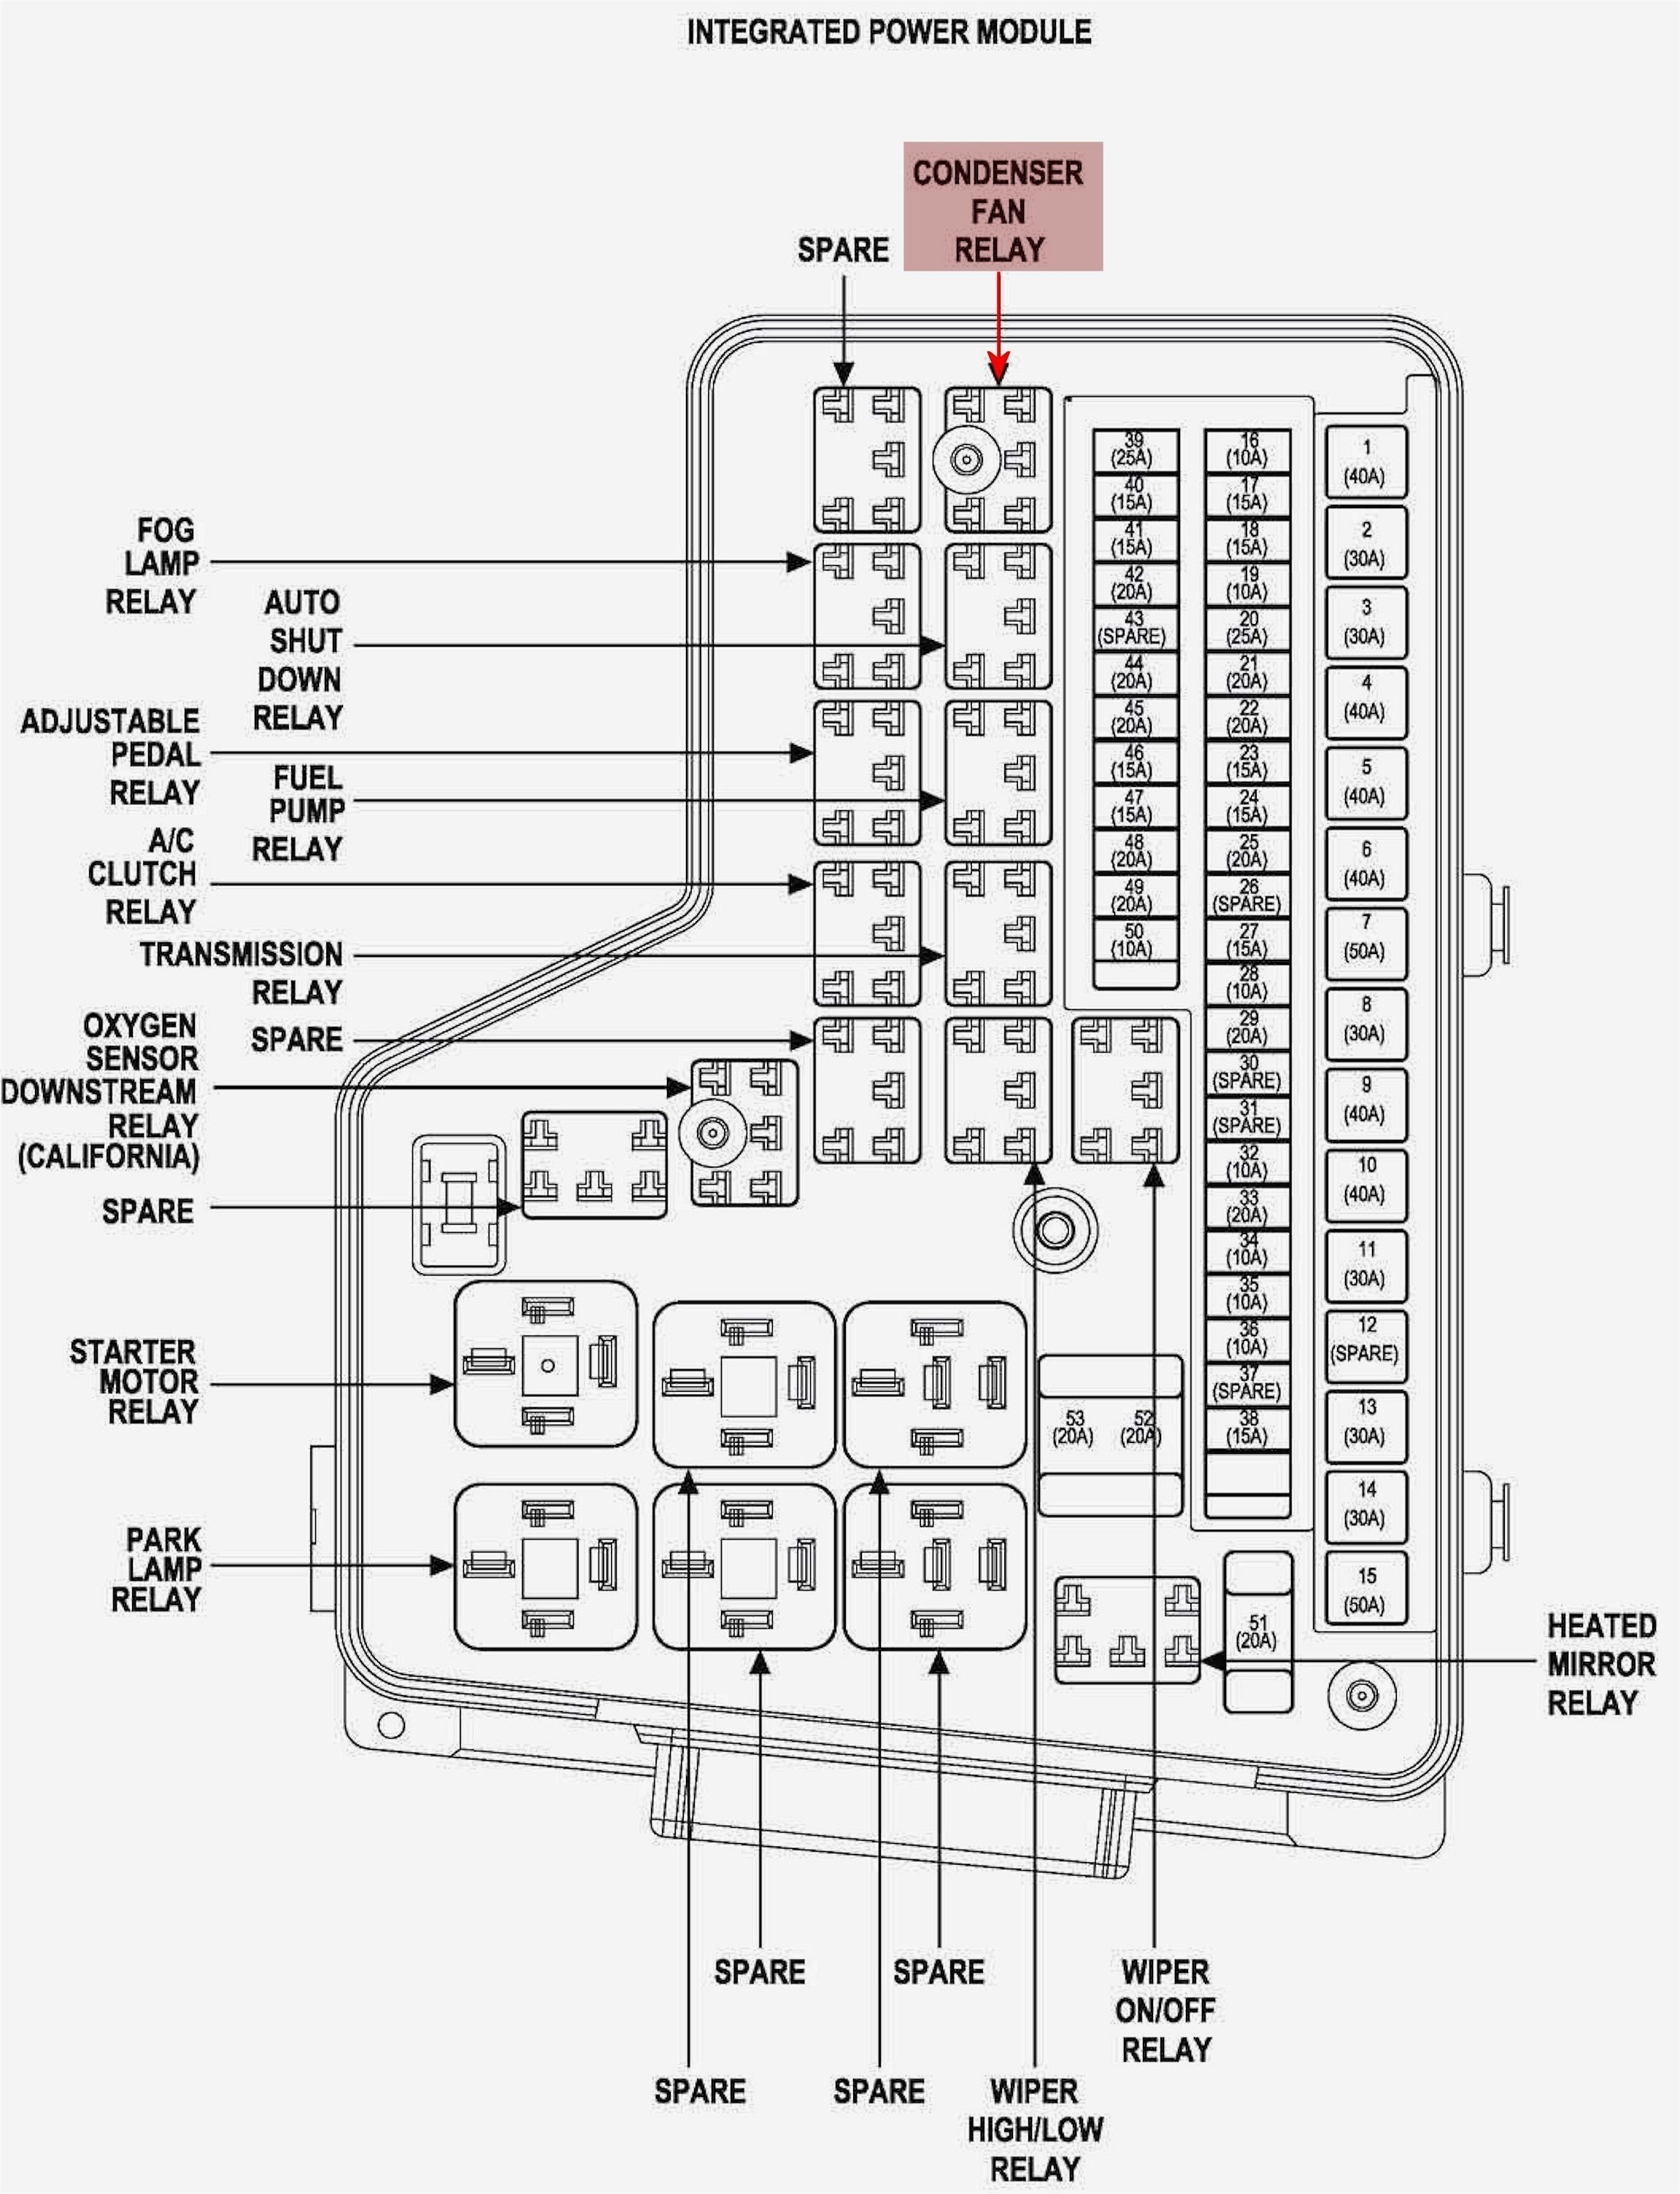 Volkswagen Jetta Fuse Box Diagram